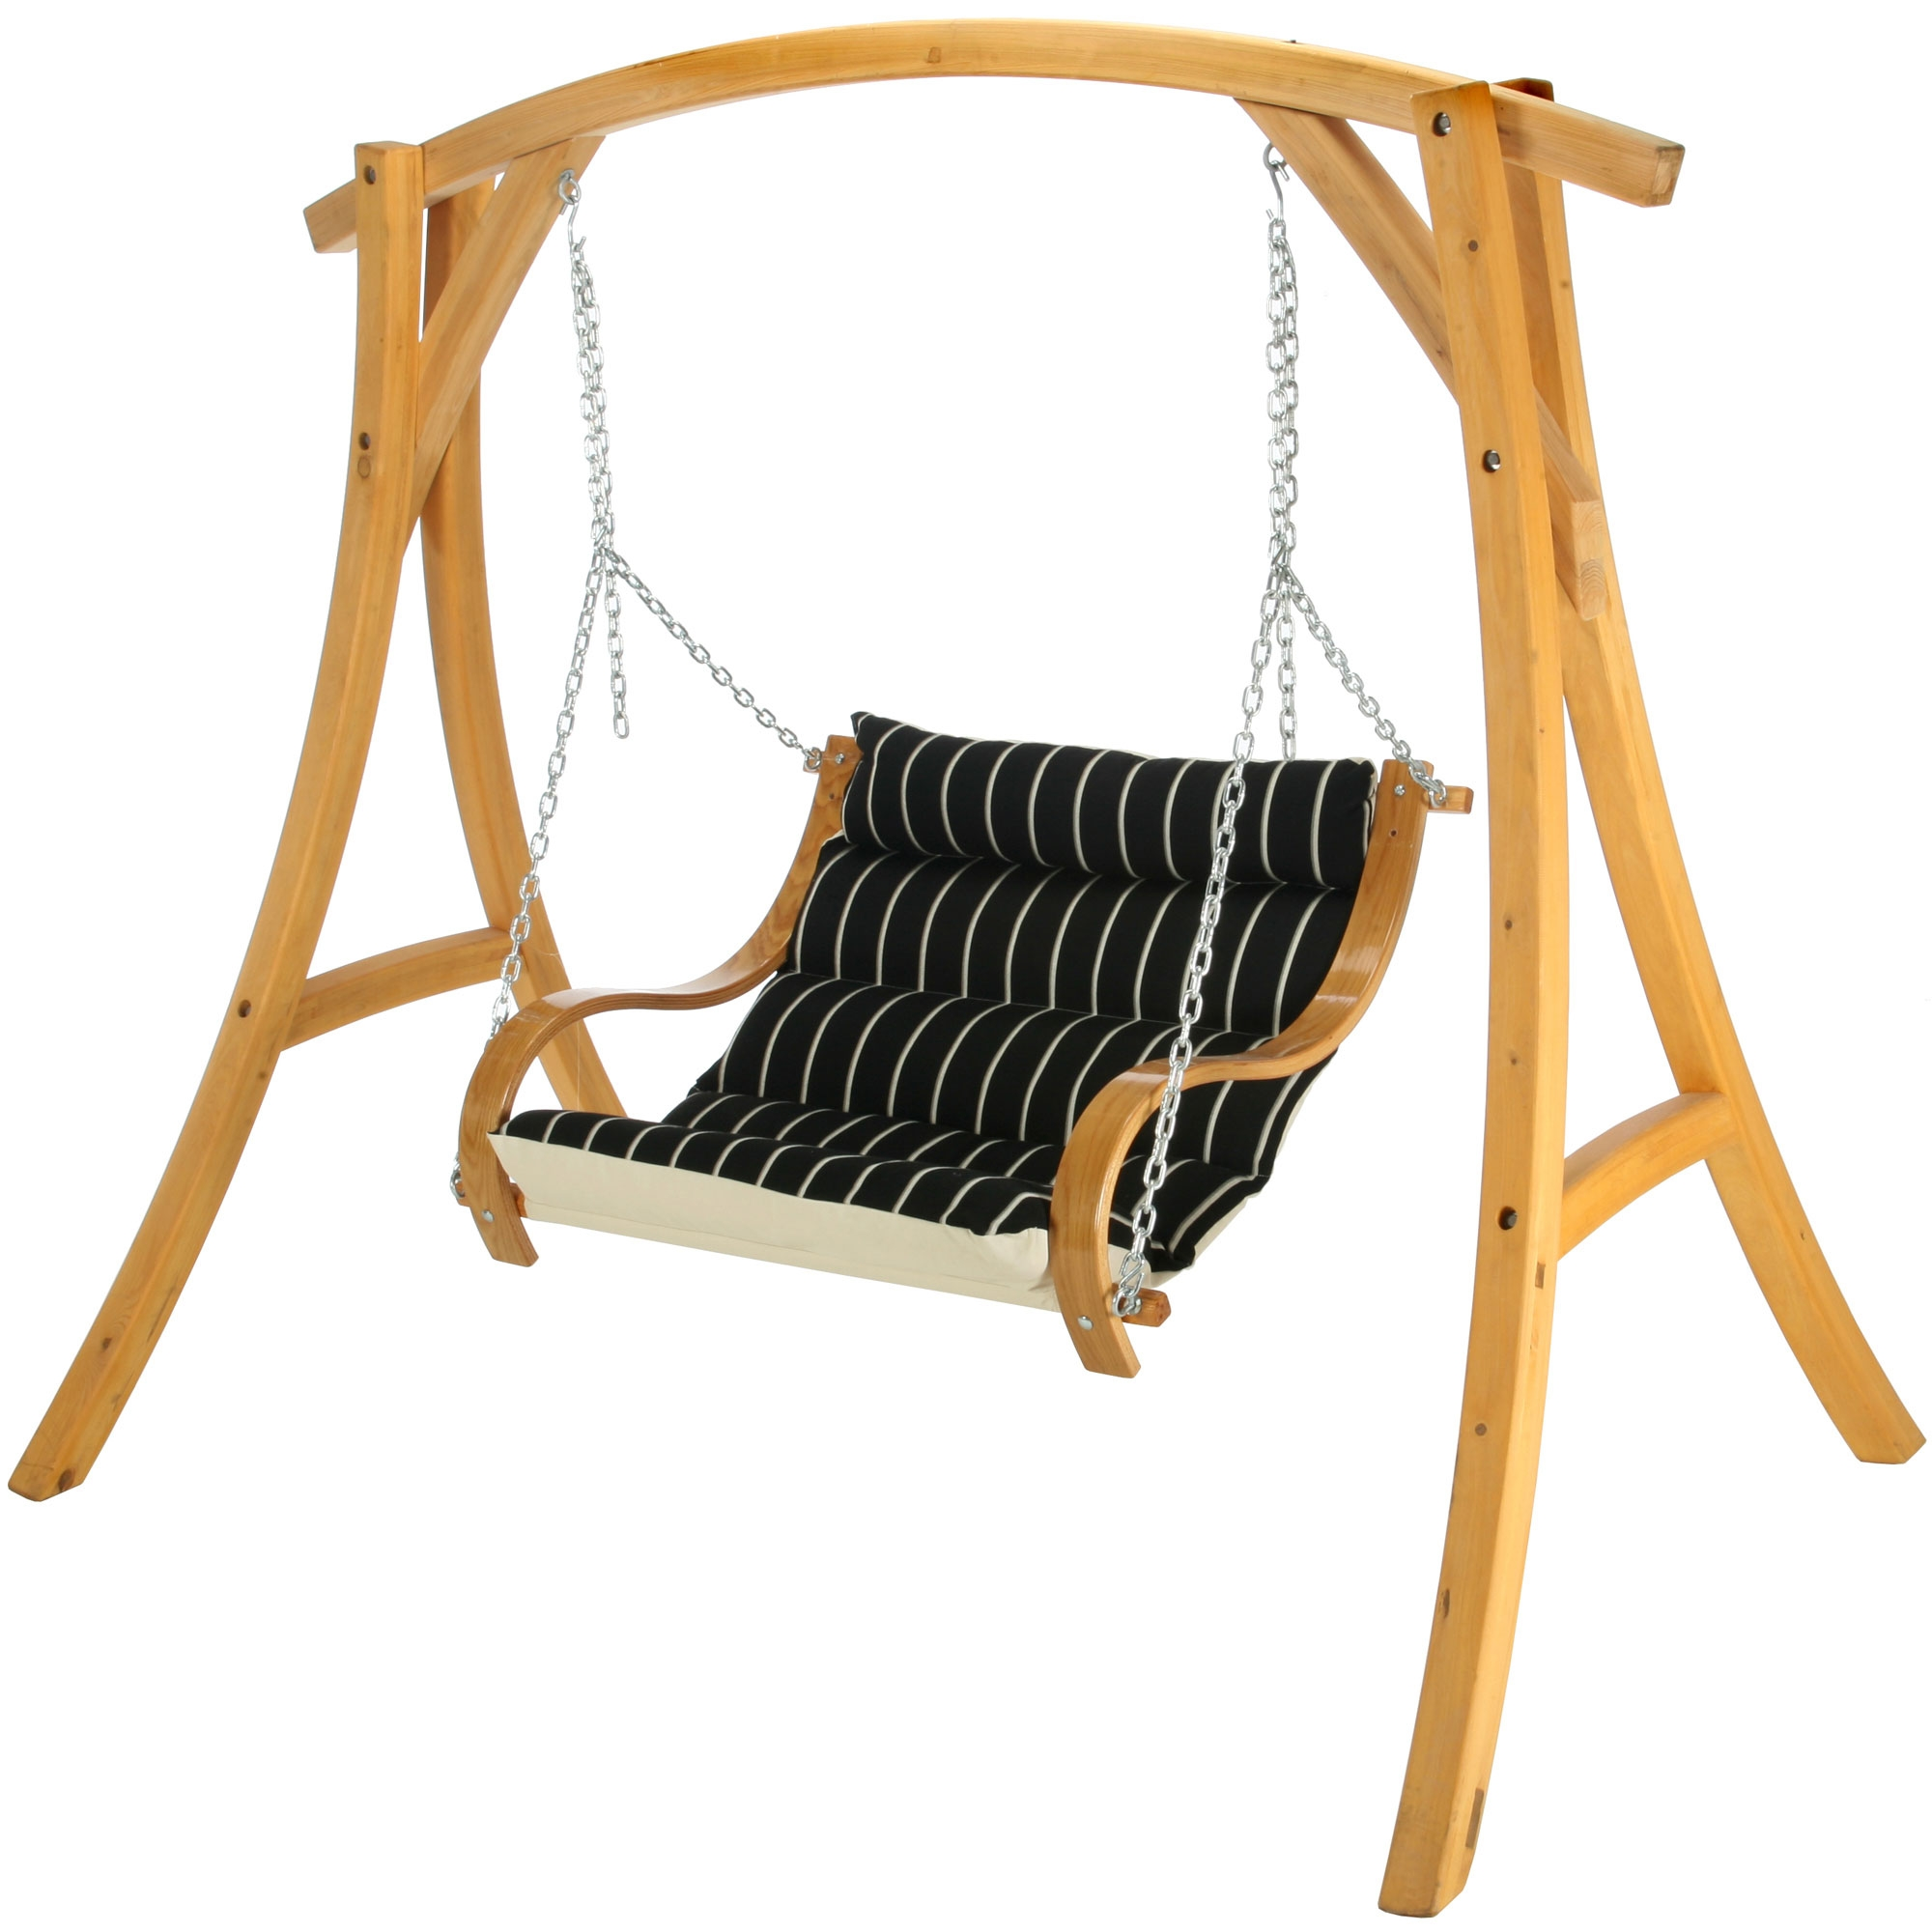 review: Cypress Swing Stand by Hatteras Hammocks